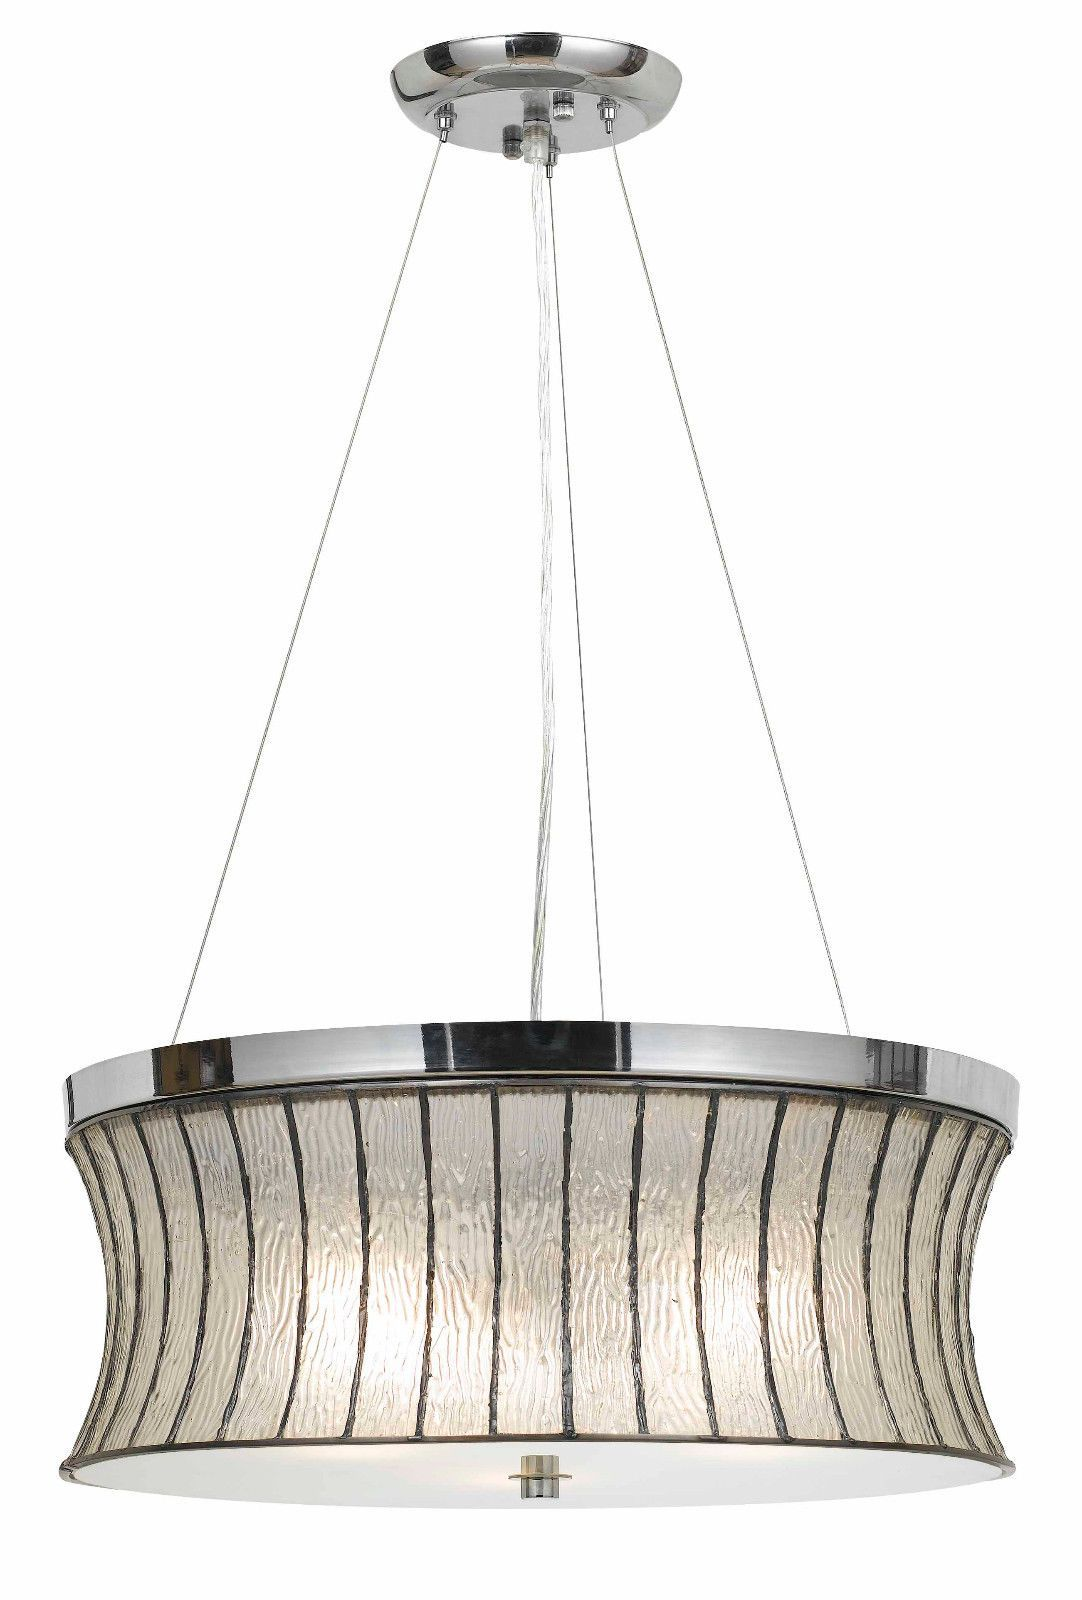 Art deco style modern chrome bell crystal glass metal drum pendant art deco style modern chrome bell crystal glass metal drum pendant light fixture chandelier 19 arubaitofo Image collections